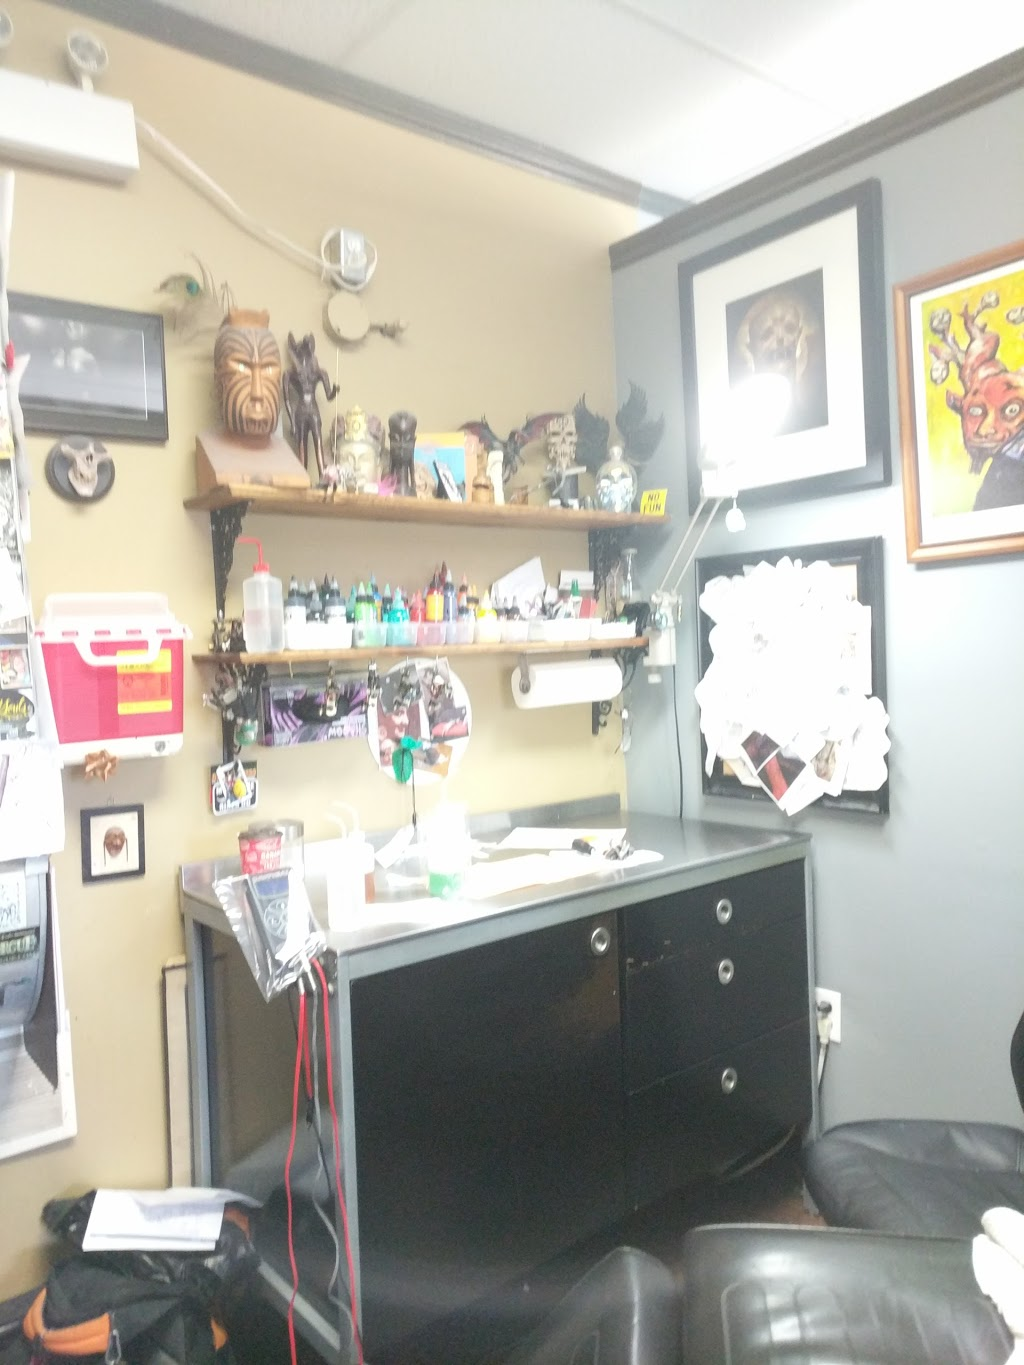 True Love Tattoo | store | 227 Wharncliffe Rd S, London, ON N6J 2L3, Canada | 5199361855 OR +1 519-936-1855